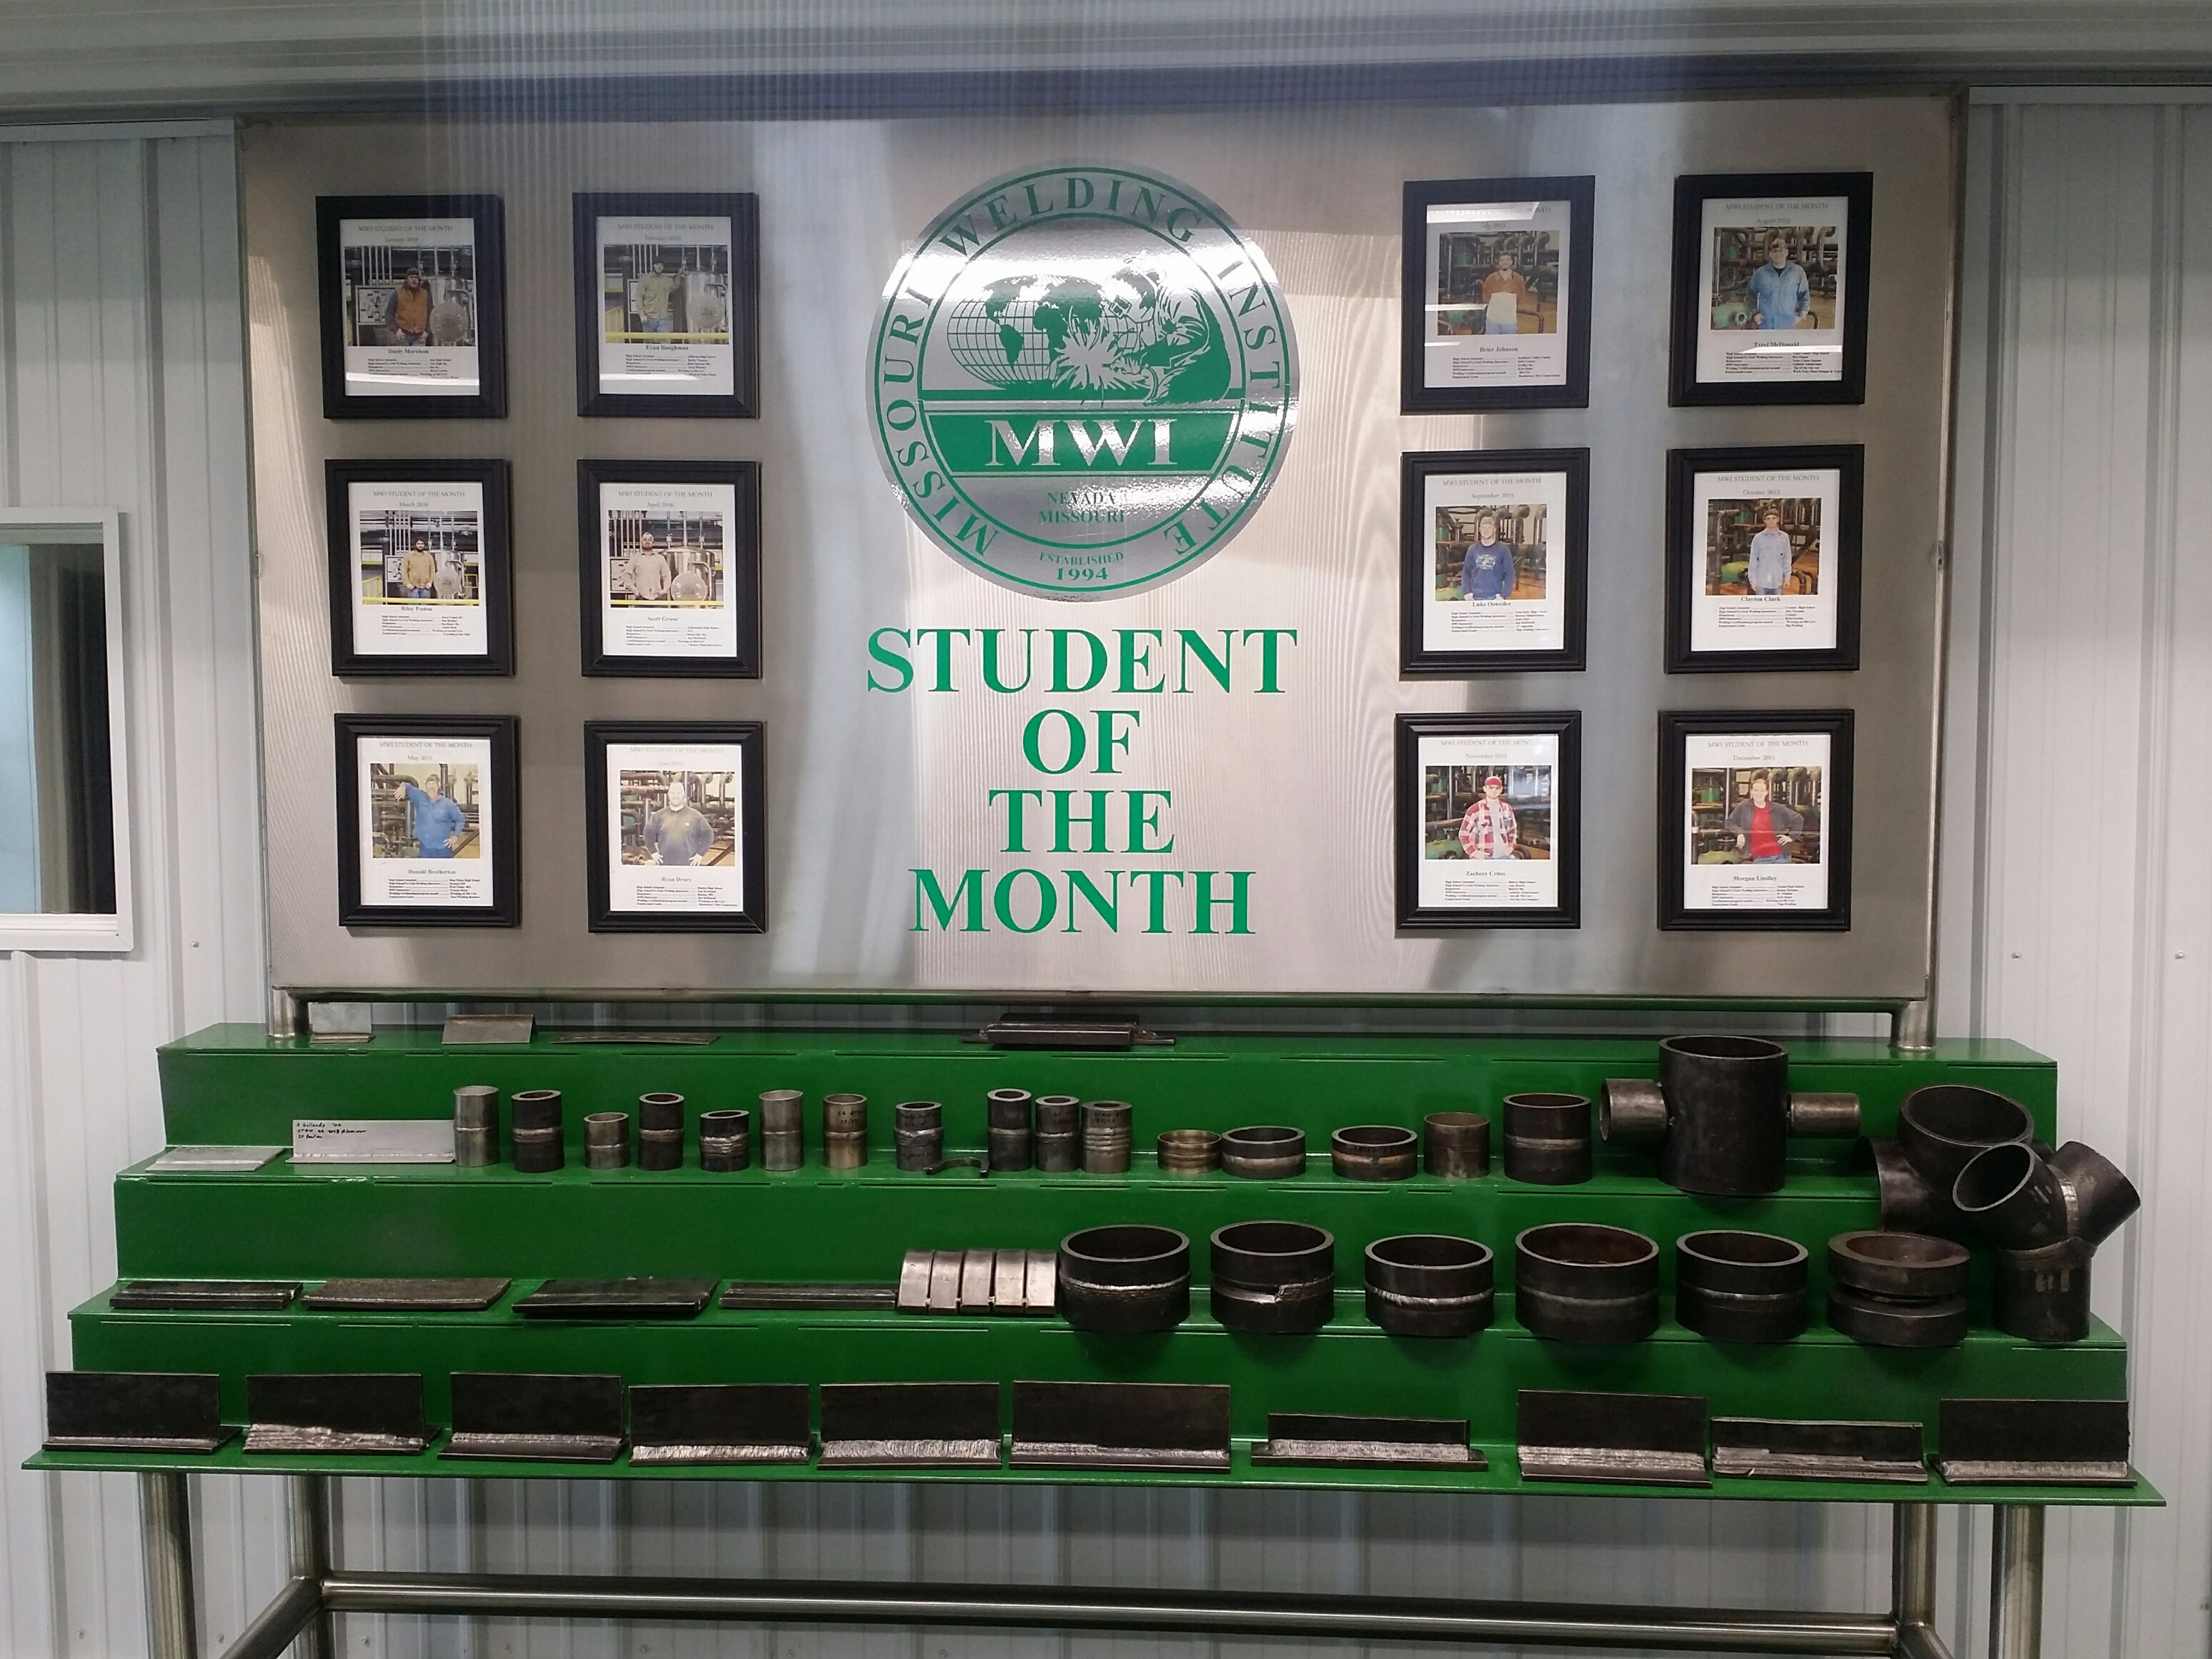 Image of MWI Student of the month board